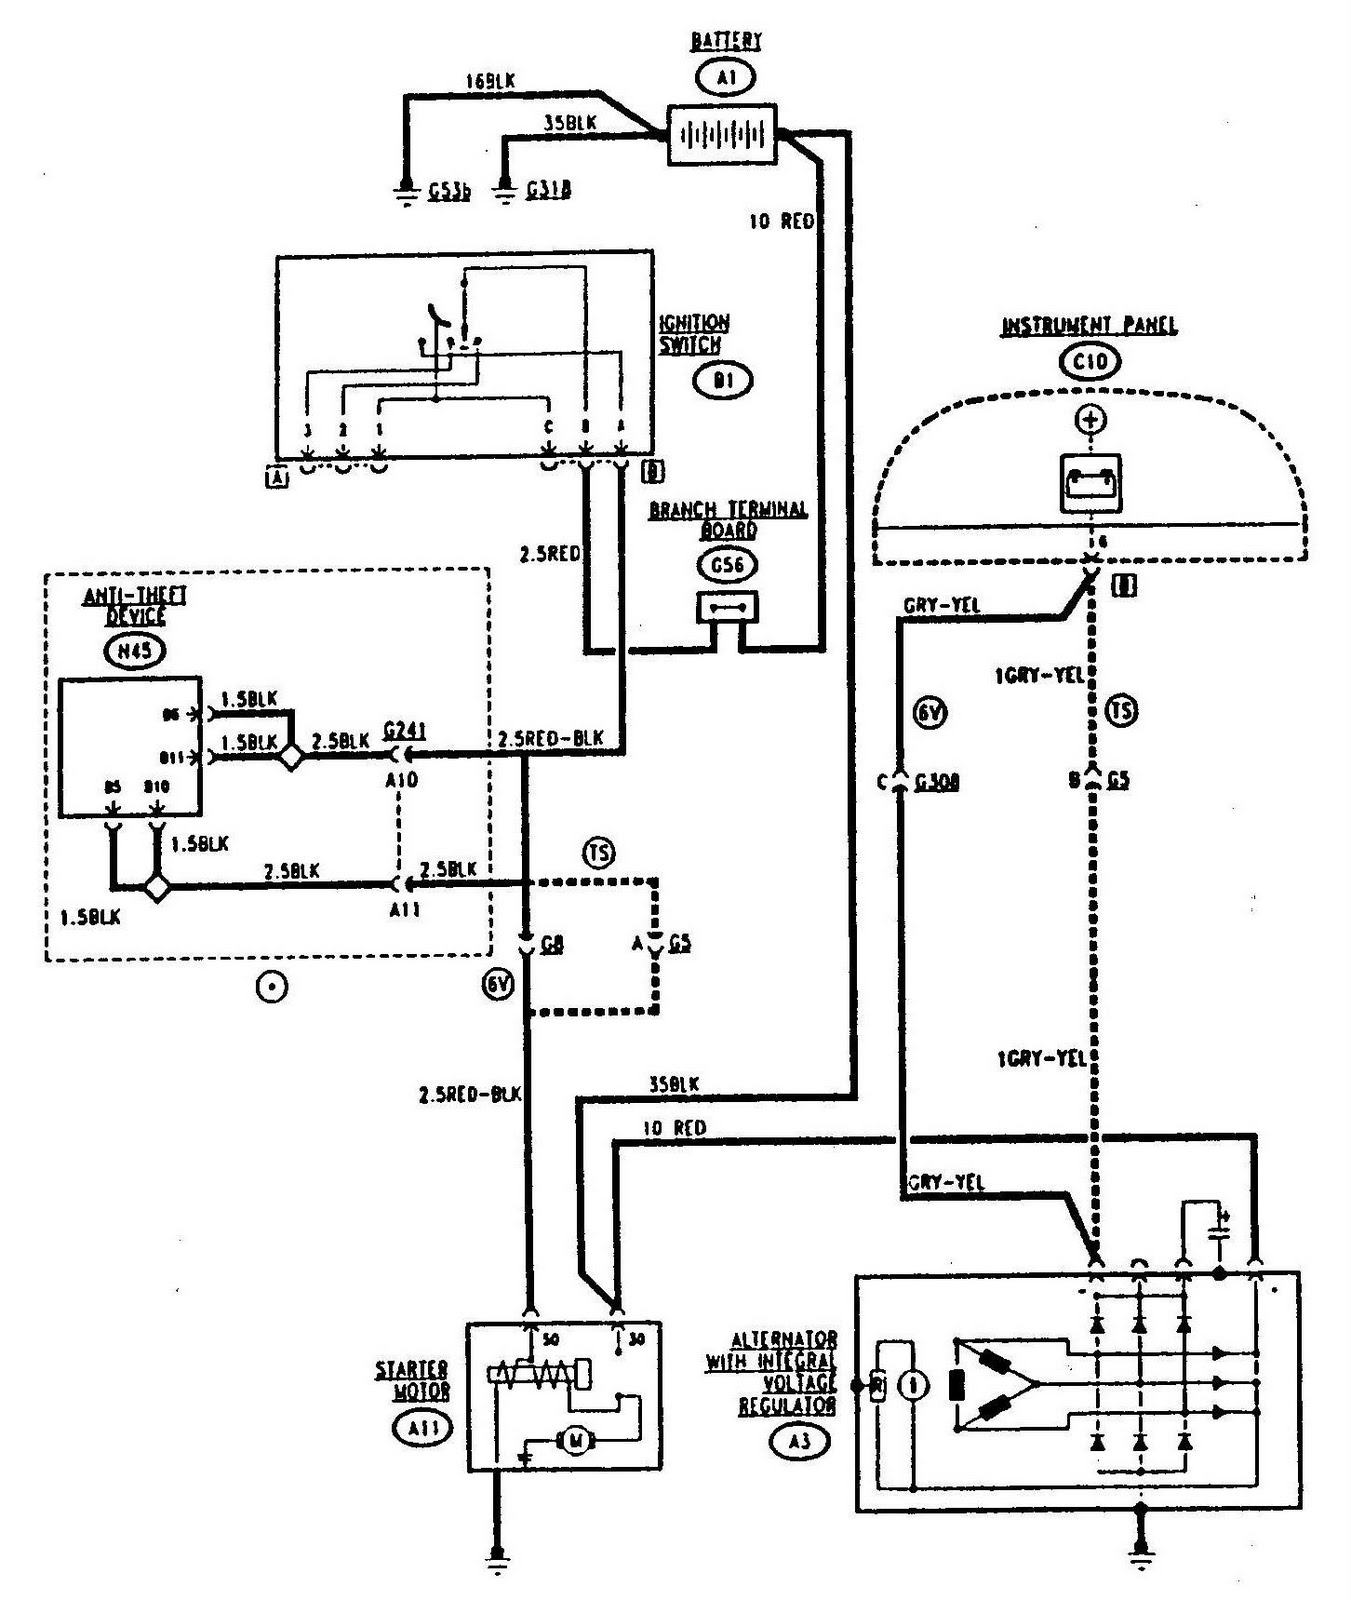 Alfa Romeo 155 Starting And Charging Circuit Diagram Wiringdiagrams 2 Line Phone Systems Wiring